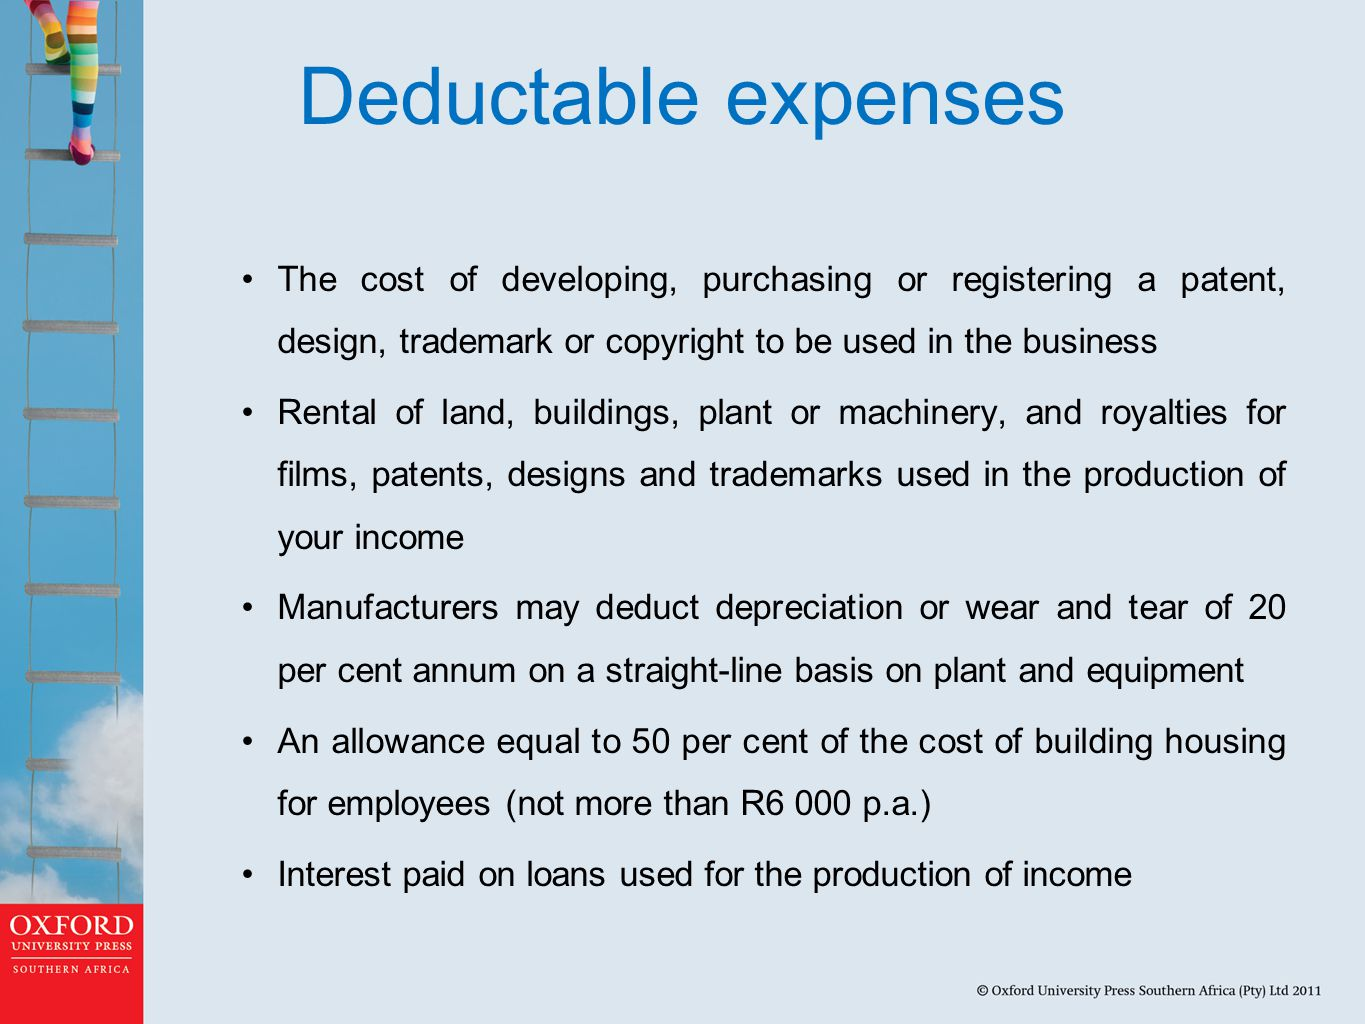 Deductable expenses The cost of developing, purchasing or registering a patent, design, trademark or copyright to be used in the business.